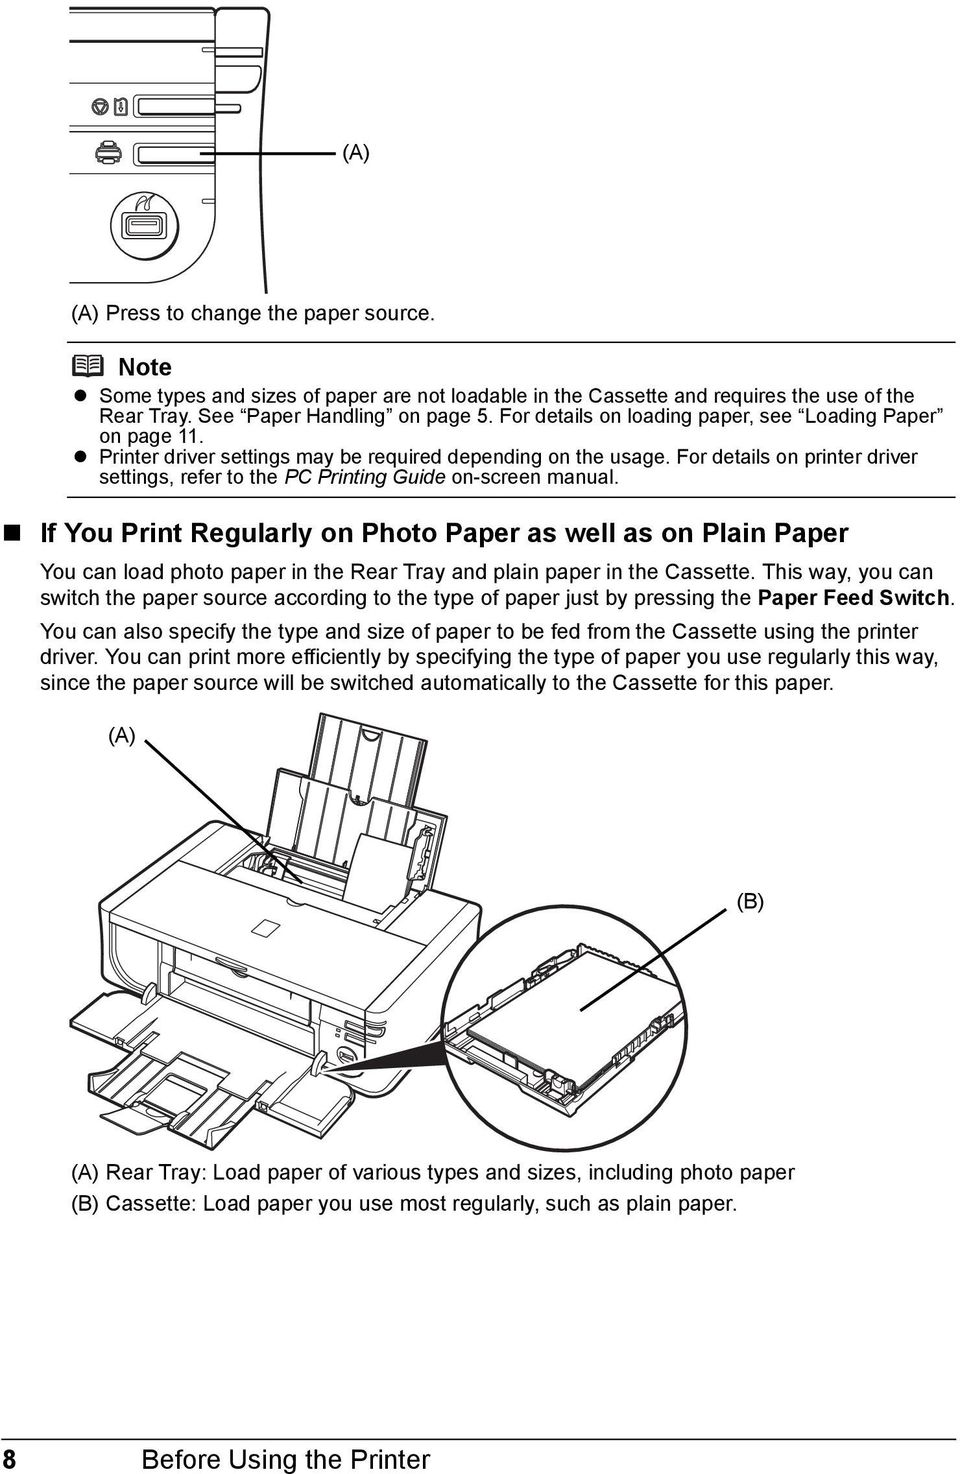 For details on printer driver settings, refer to the PC Printing Guide on-screen manual.